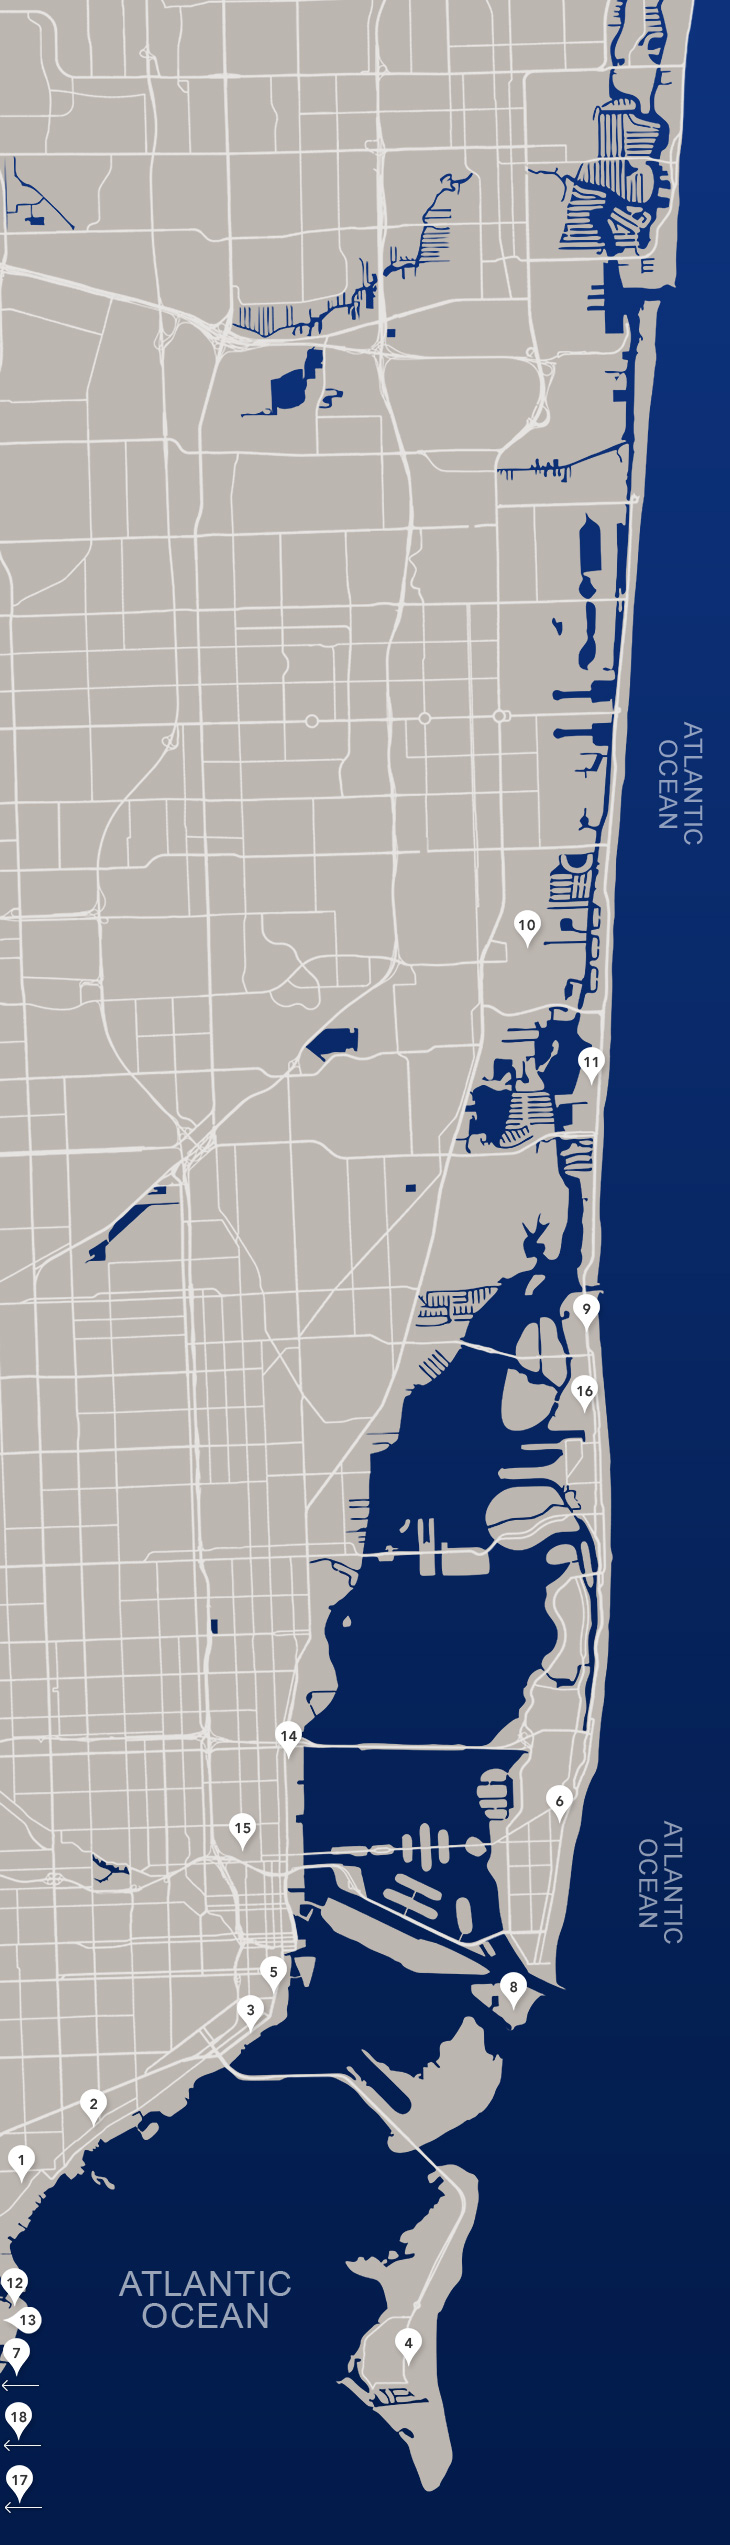 South Miami Map, Map Of Coral Gables, Coconut Grove Map, Pinecrest - Coconut Grove Florida Map